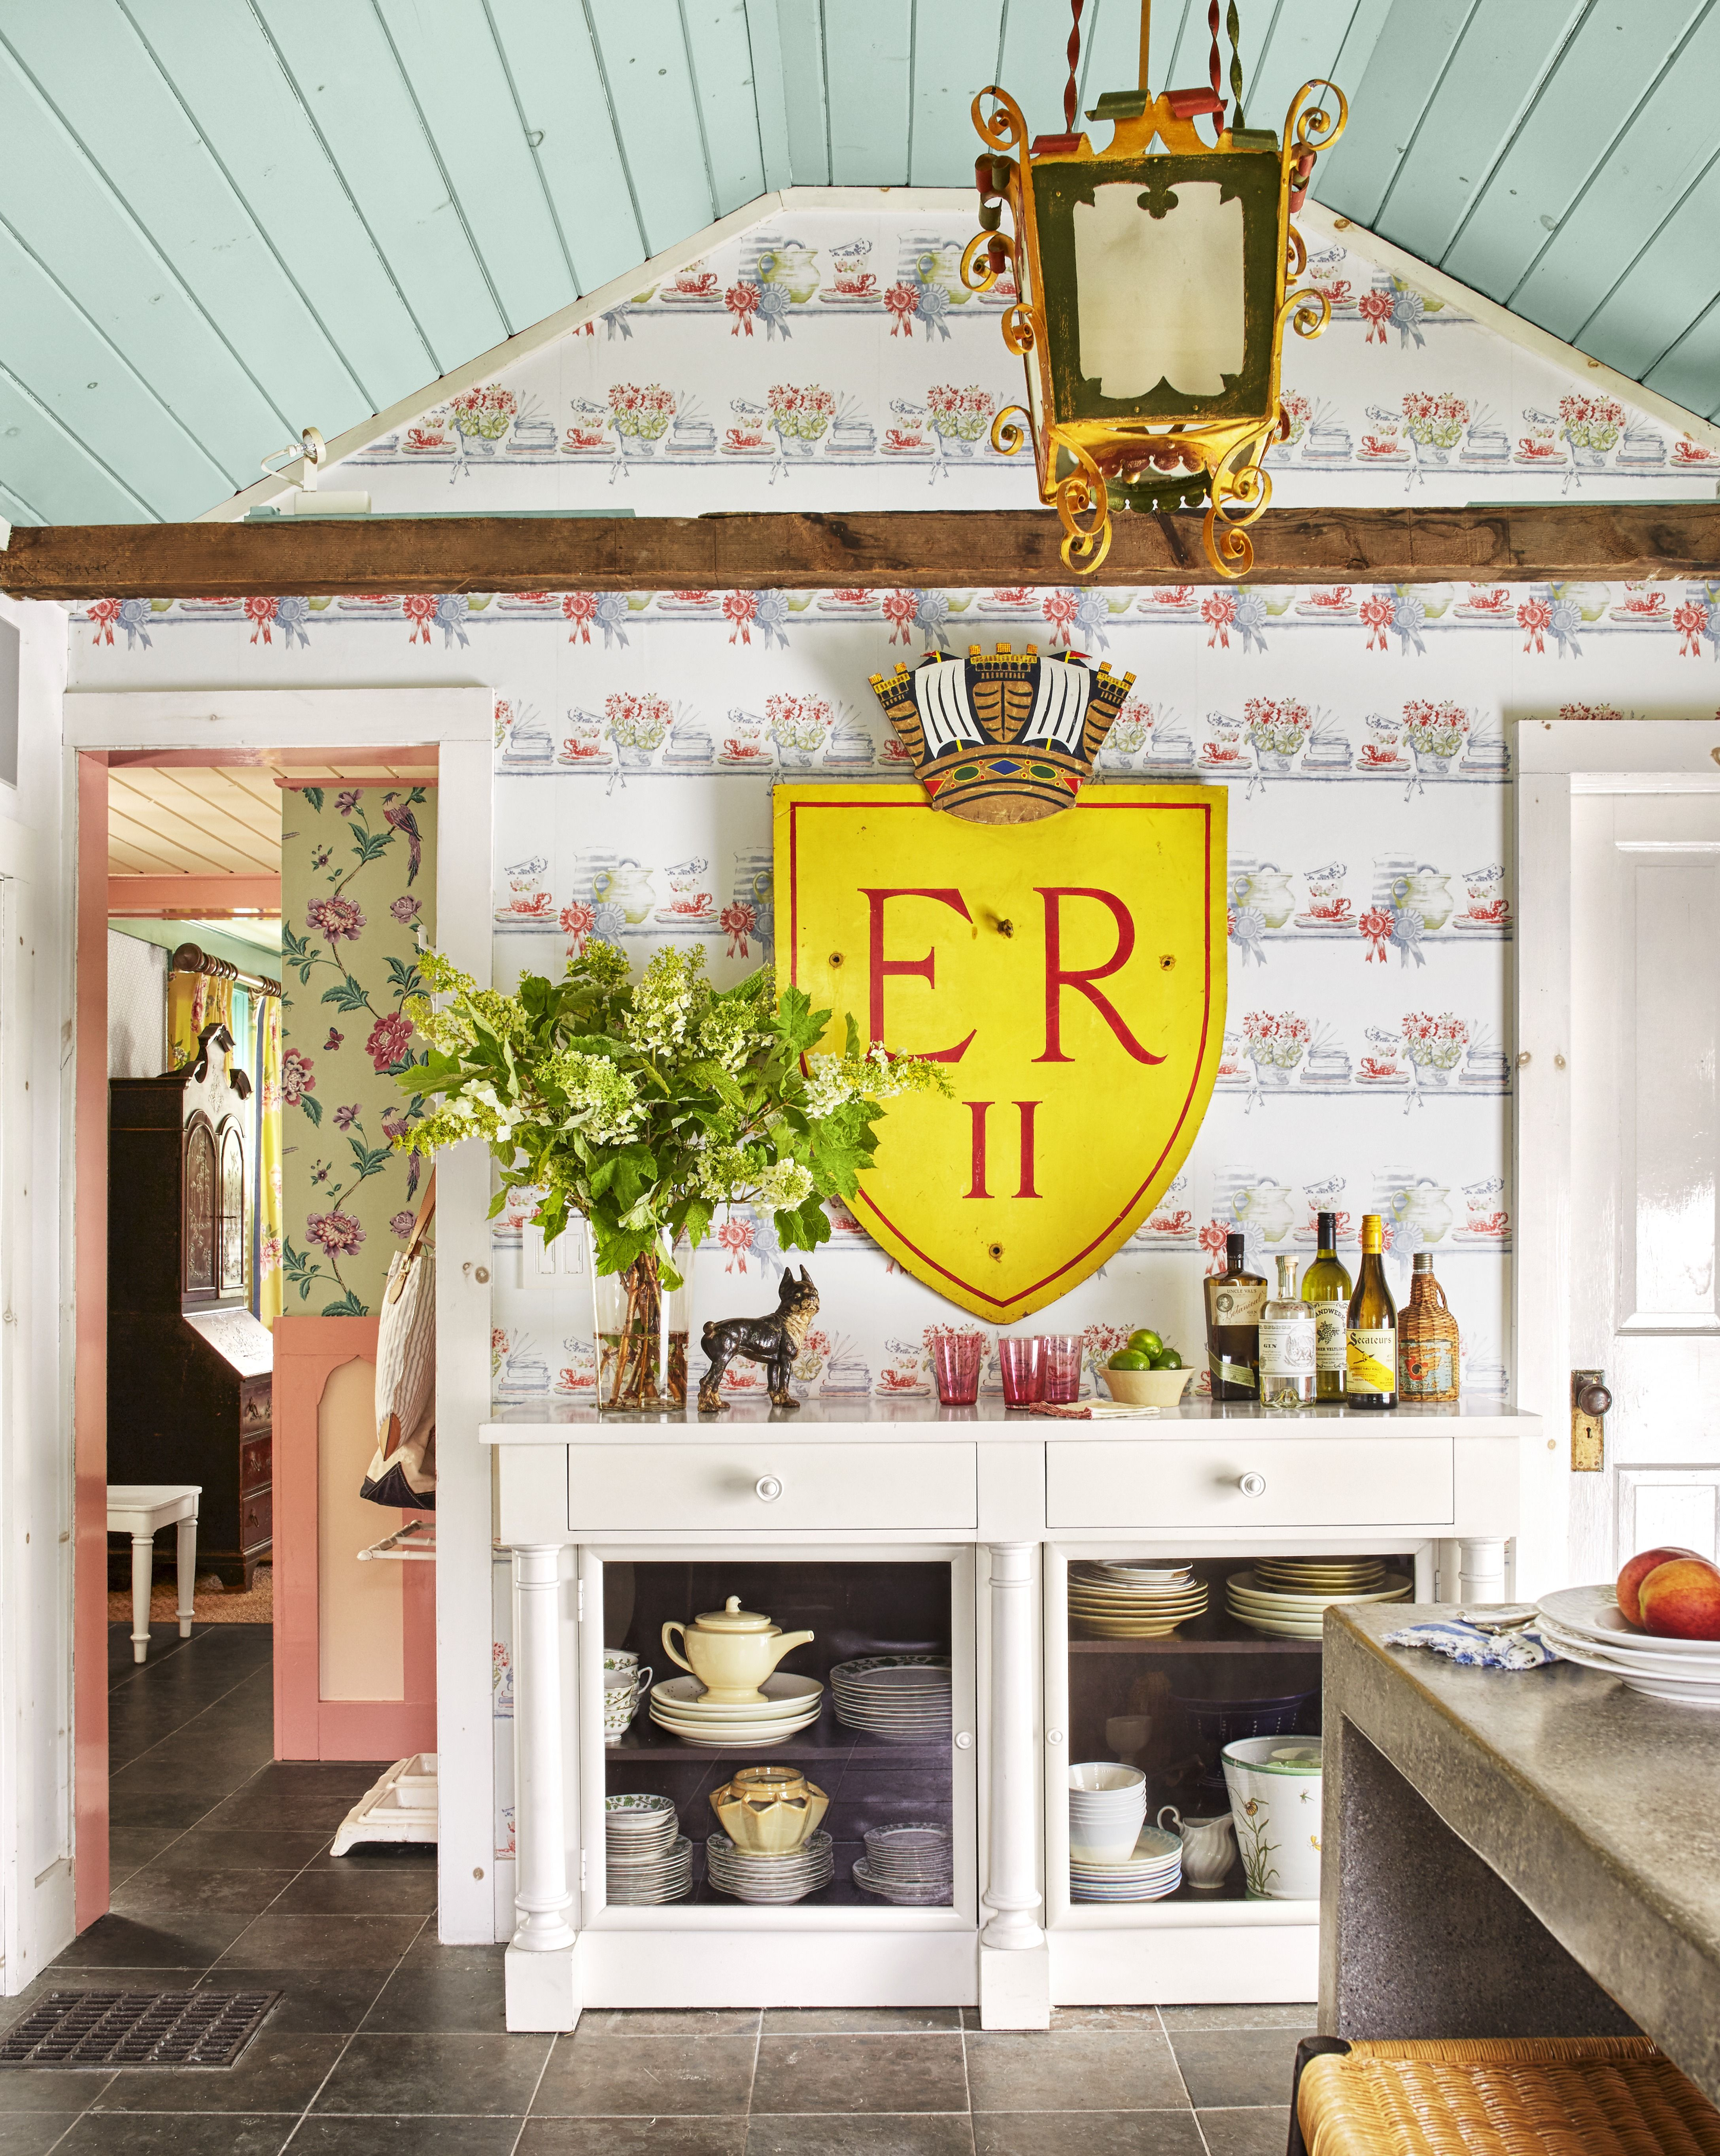 15 Best Kitchen Wallpaper Ideas How To Decorate Your Kitchen With Wallpaper